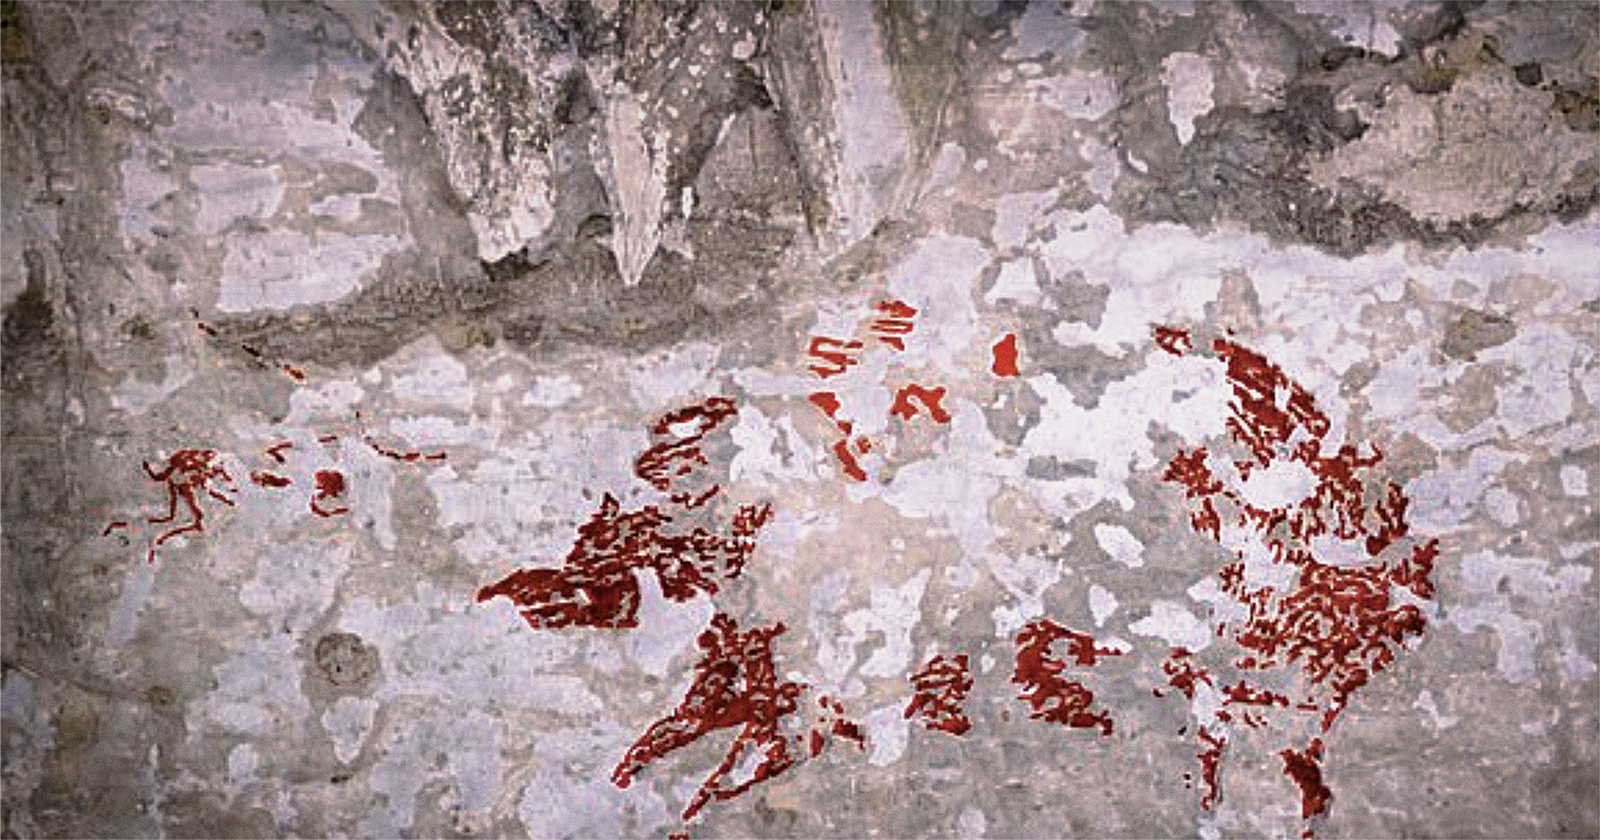 Indonesia sulawesi rock art human-like hunters fleeing mammals dated 44,000 years old cave art species